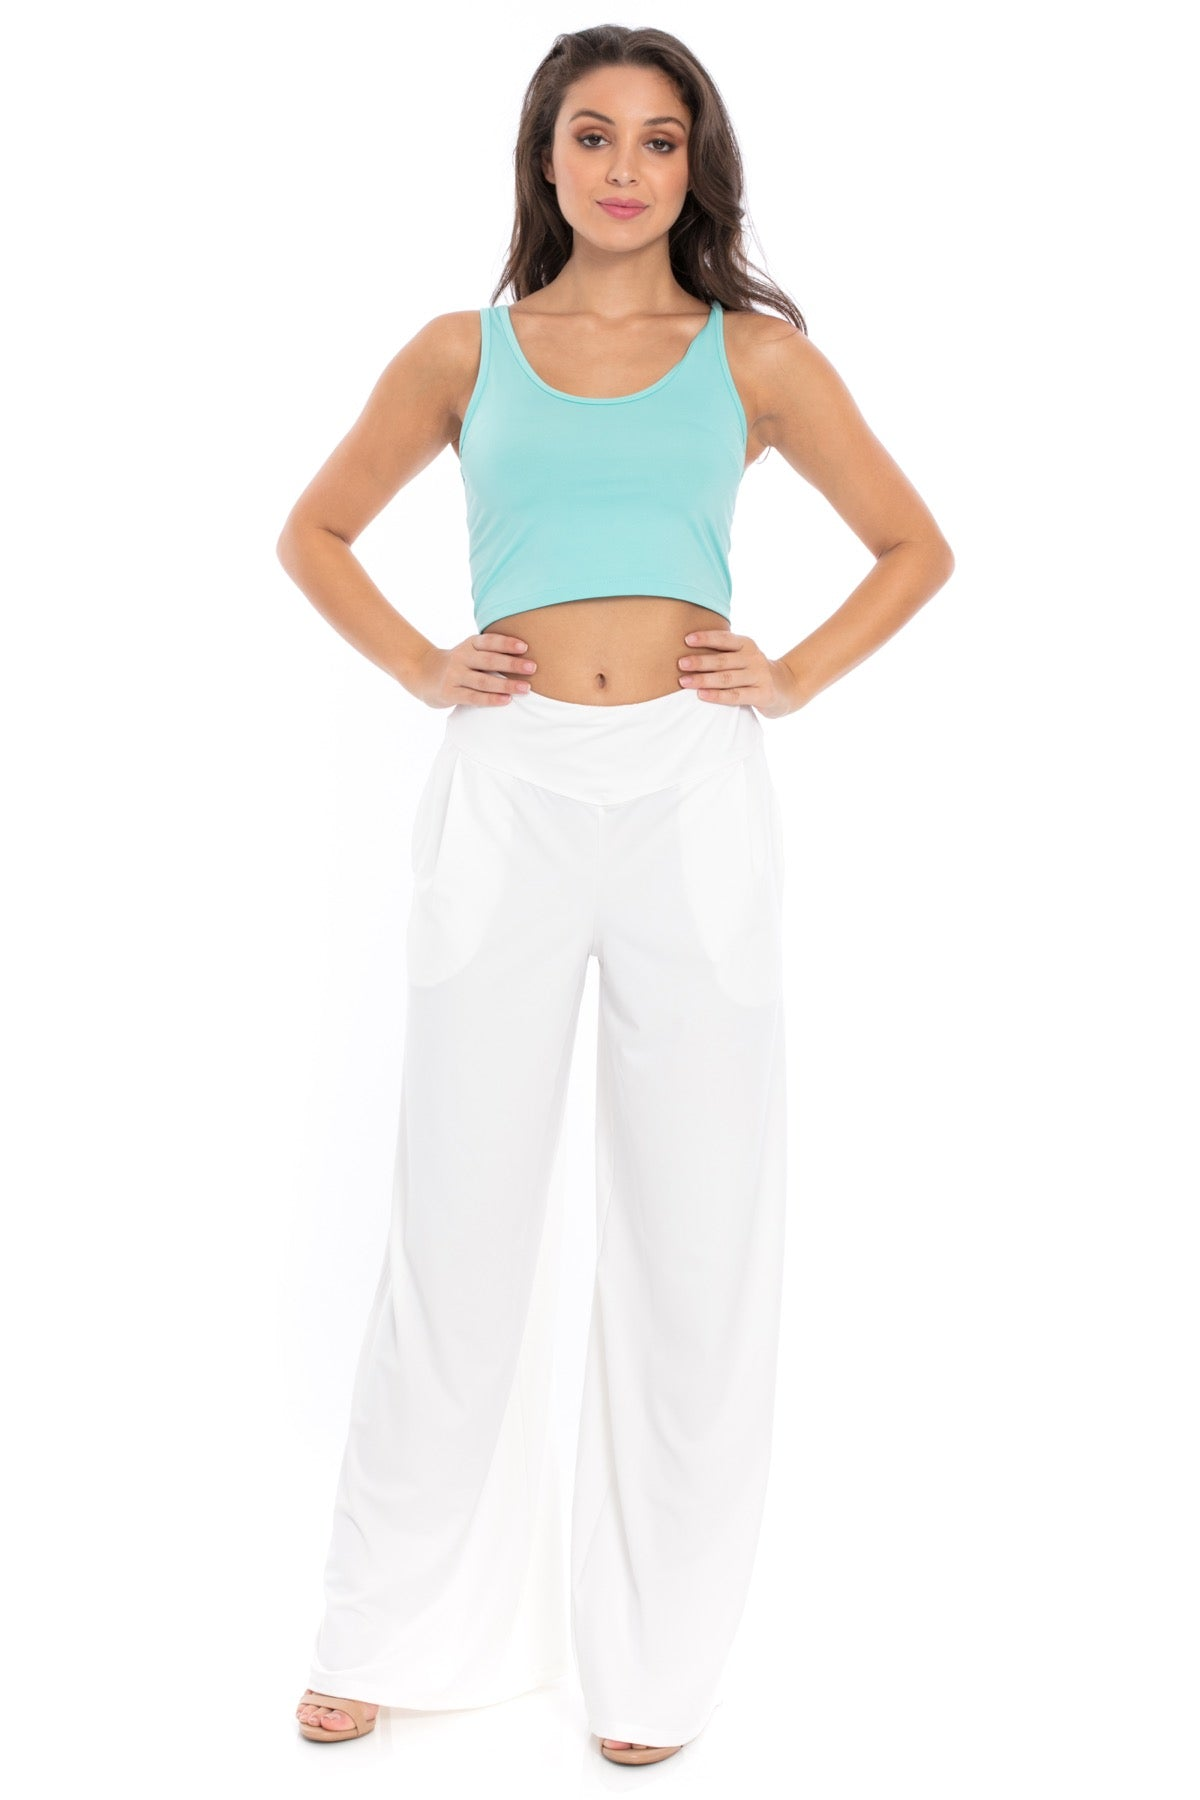 Porto Pants | UV protective pants for women - Luminora